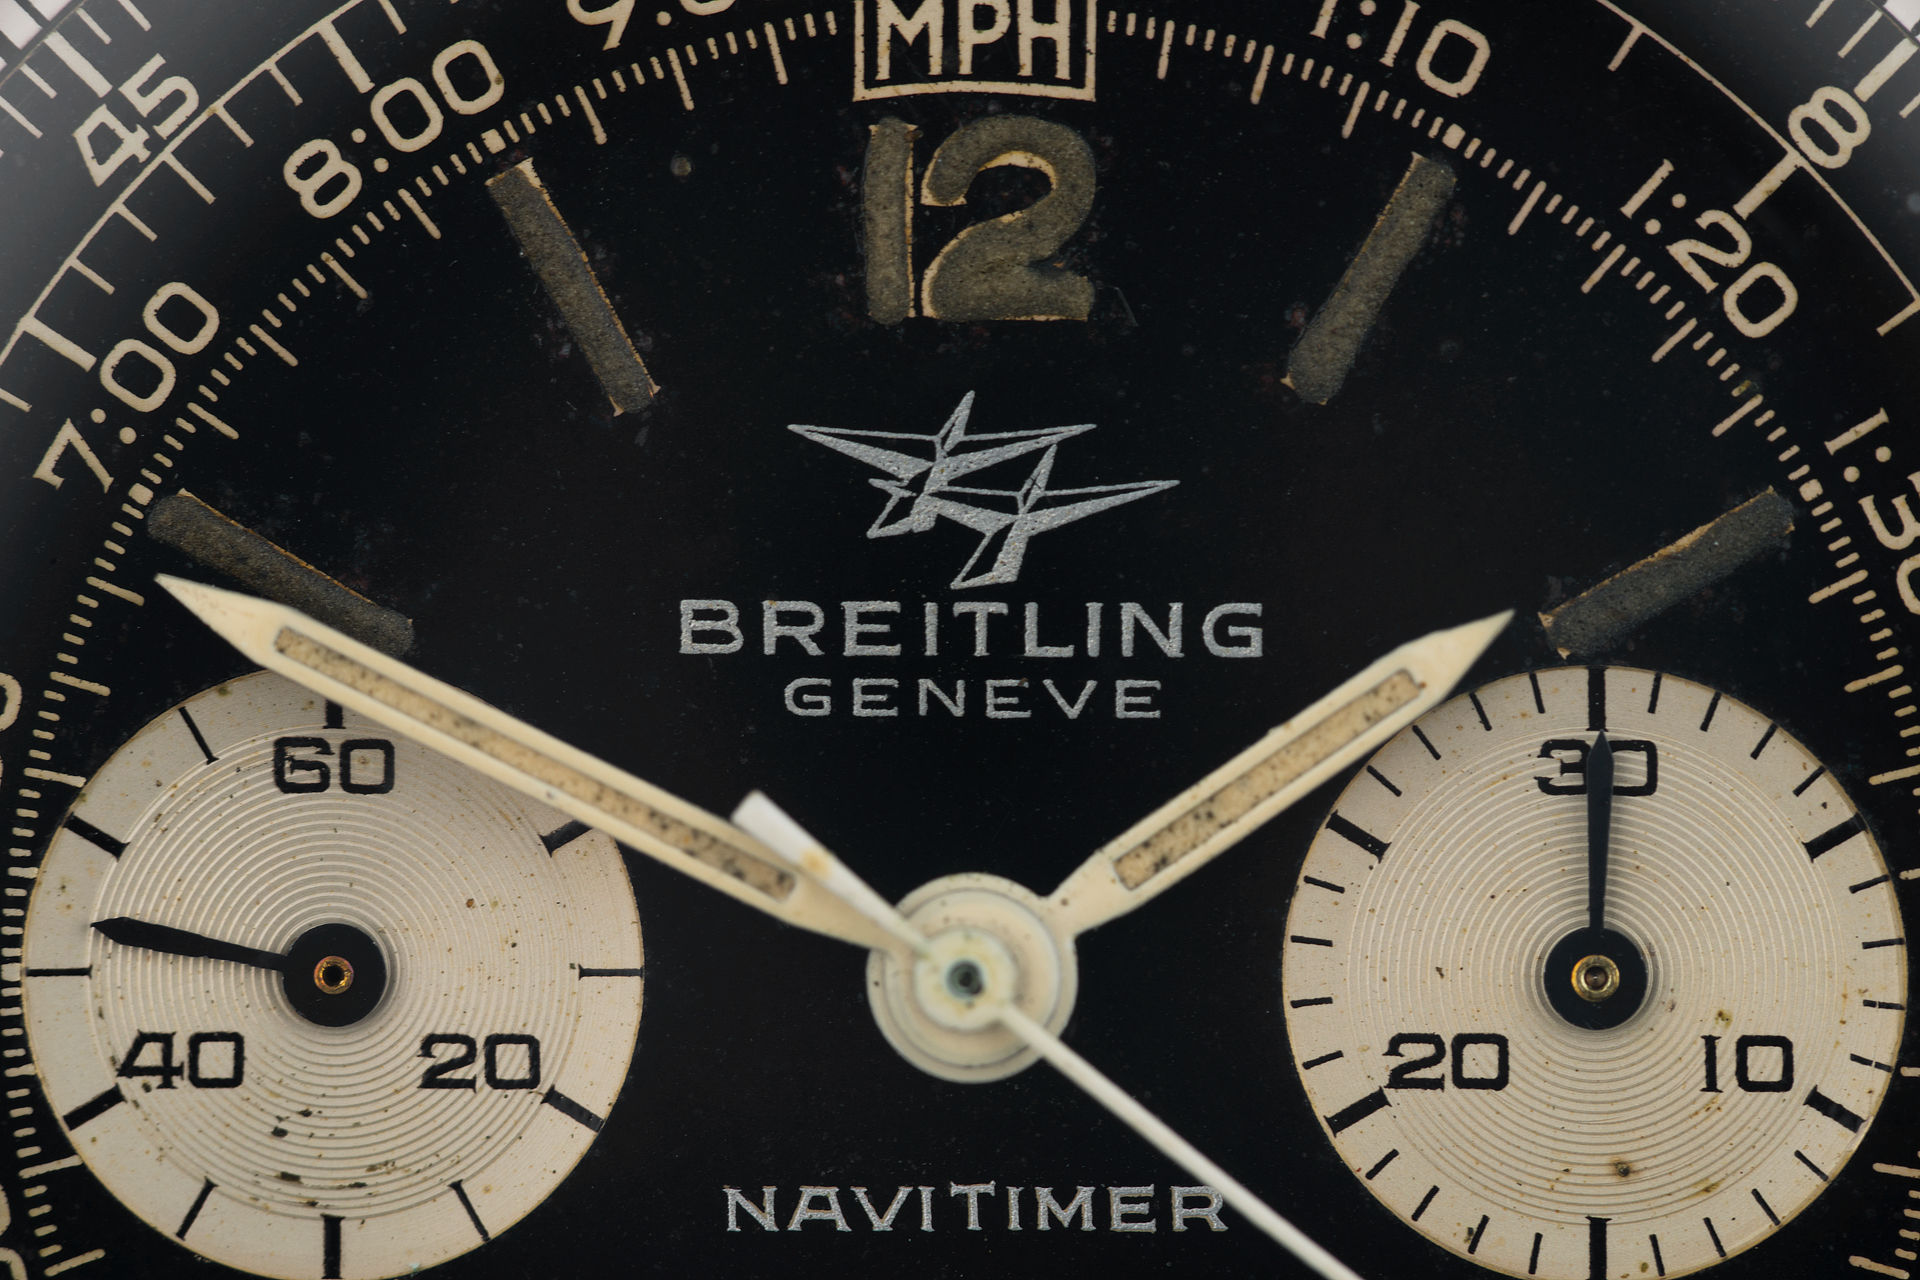 ref 806 | 'Twin Planes' from 1966 | Breitling Navitimer